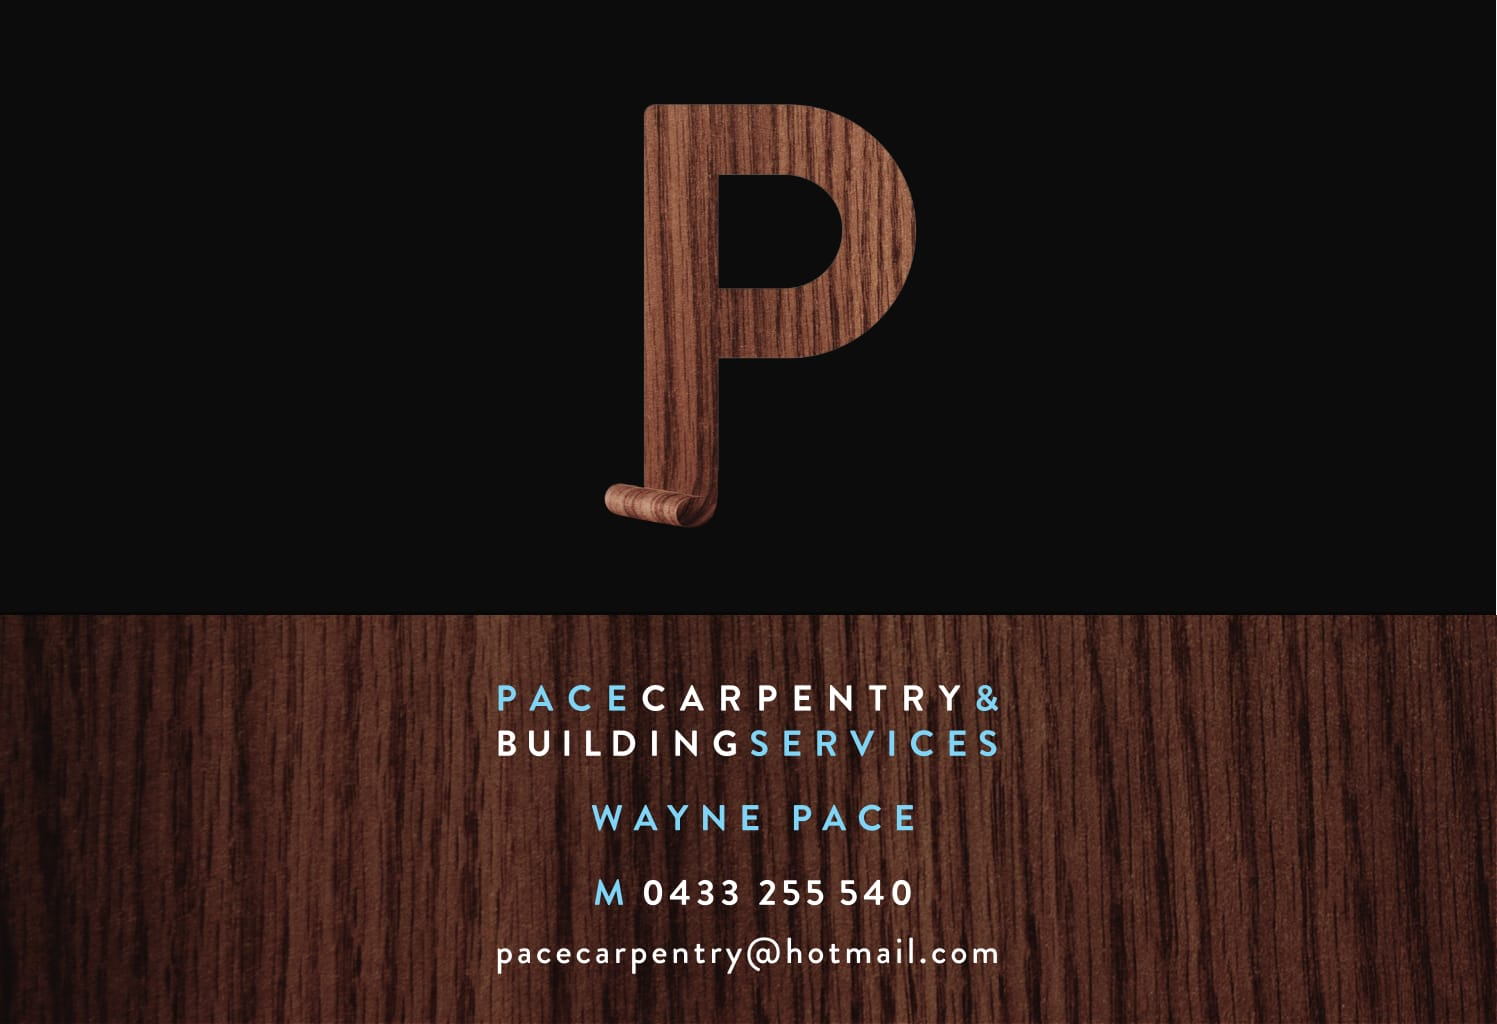 Pace Carpentry & Building Services